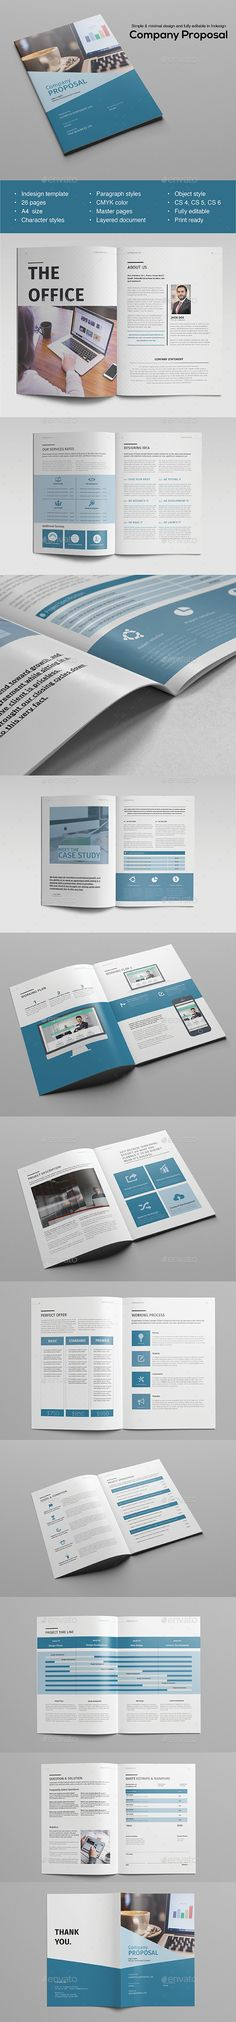 Proposal Proposal templates, Proposals and Project proposal - event proposal template